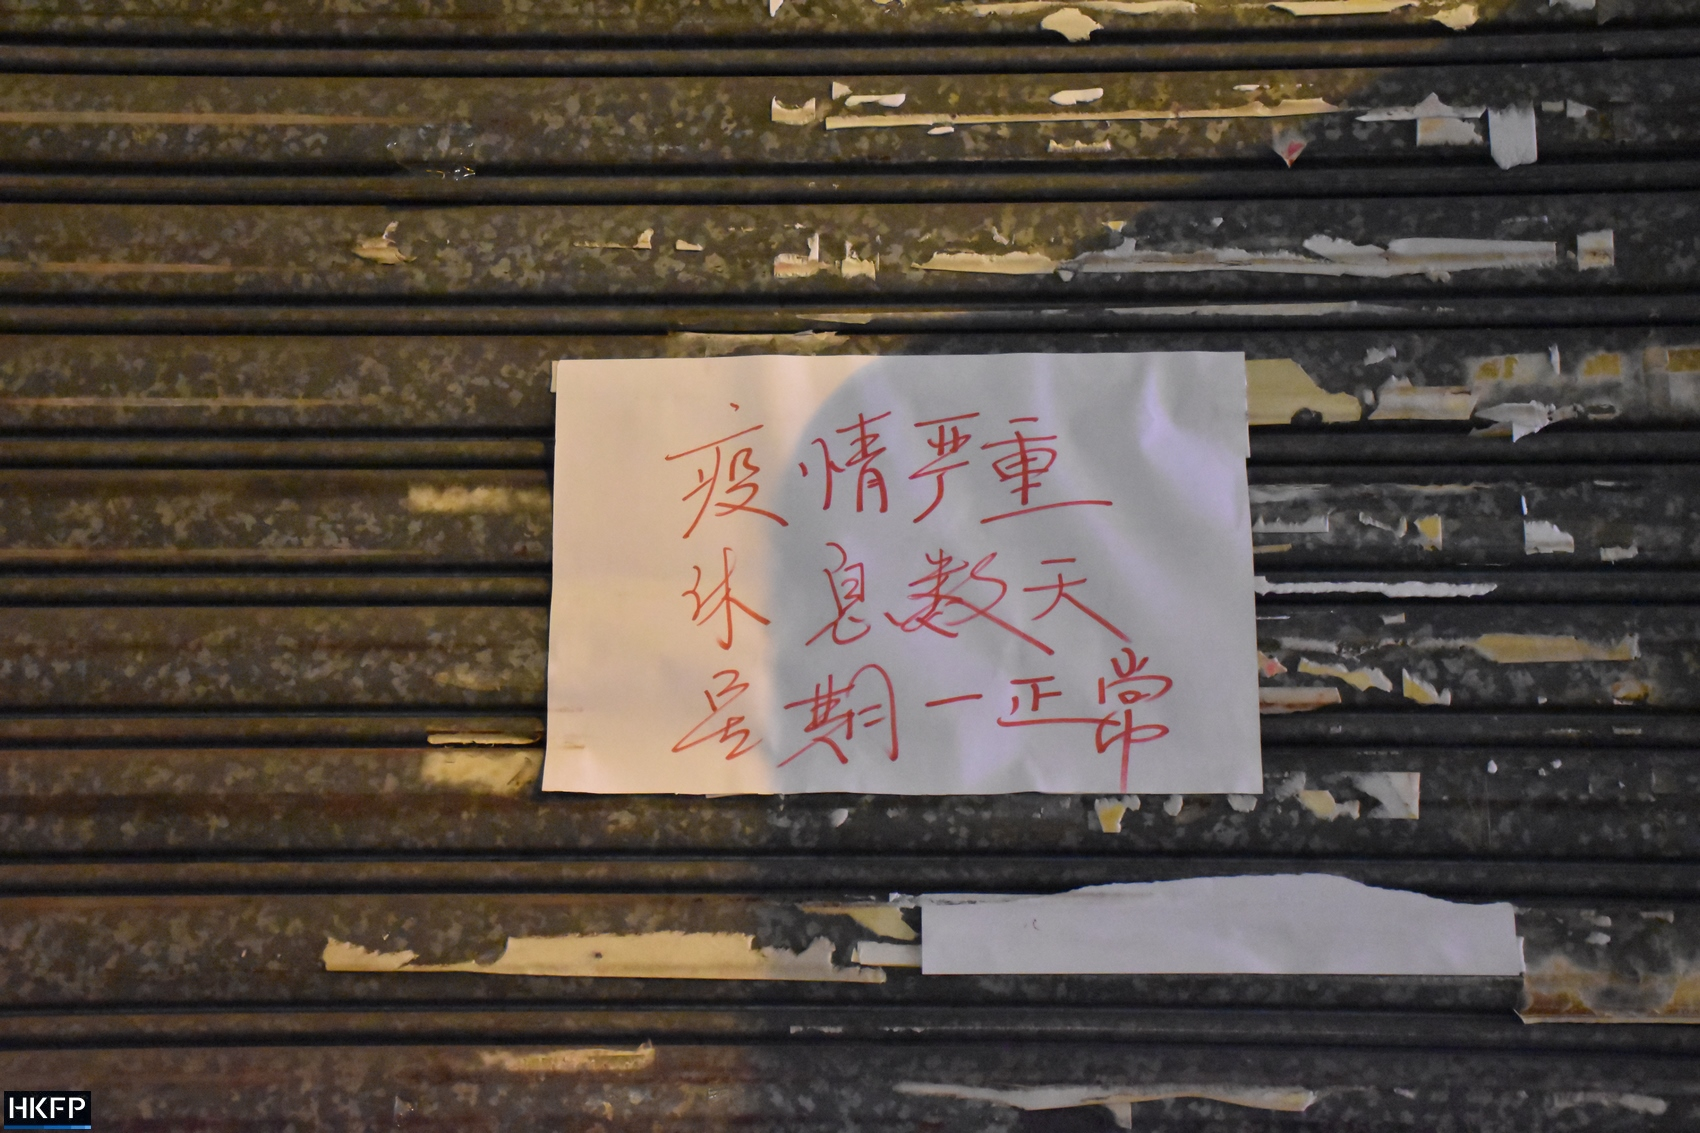 Sign outside a store in Yau Ma Tei